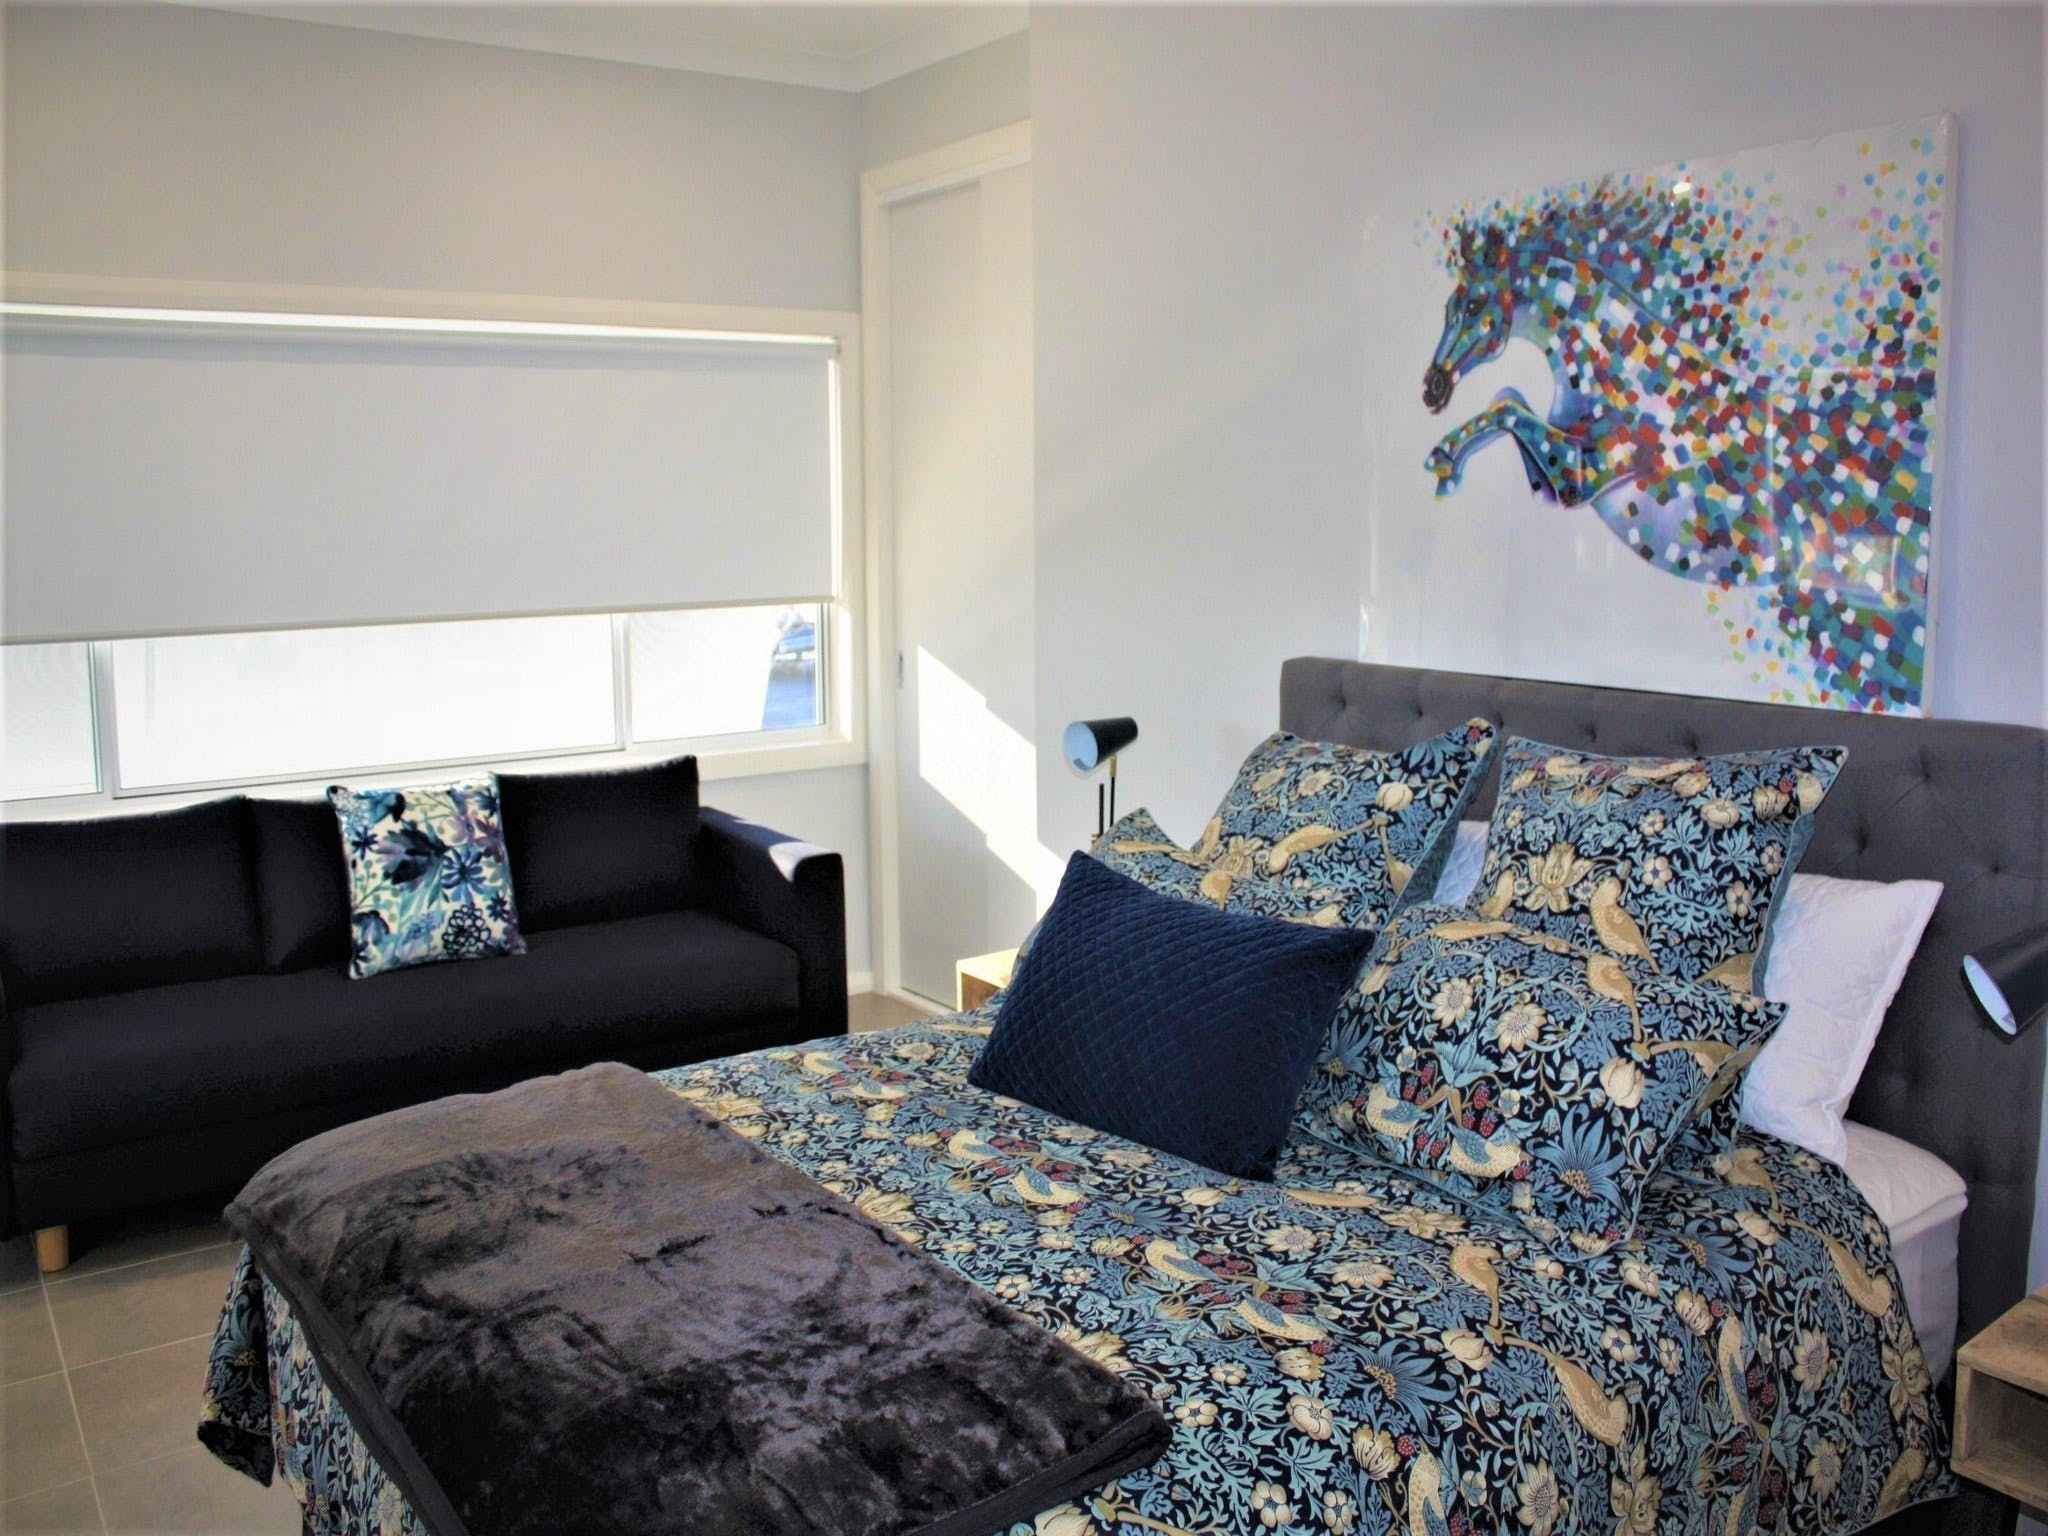 Coolah Shorts - Self Contained Apartments - Hervey Bay Accommodation